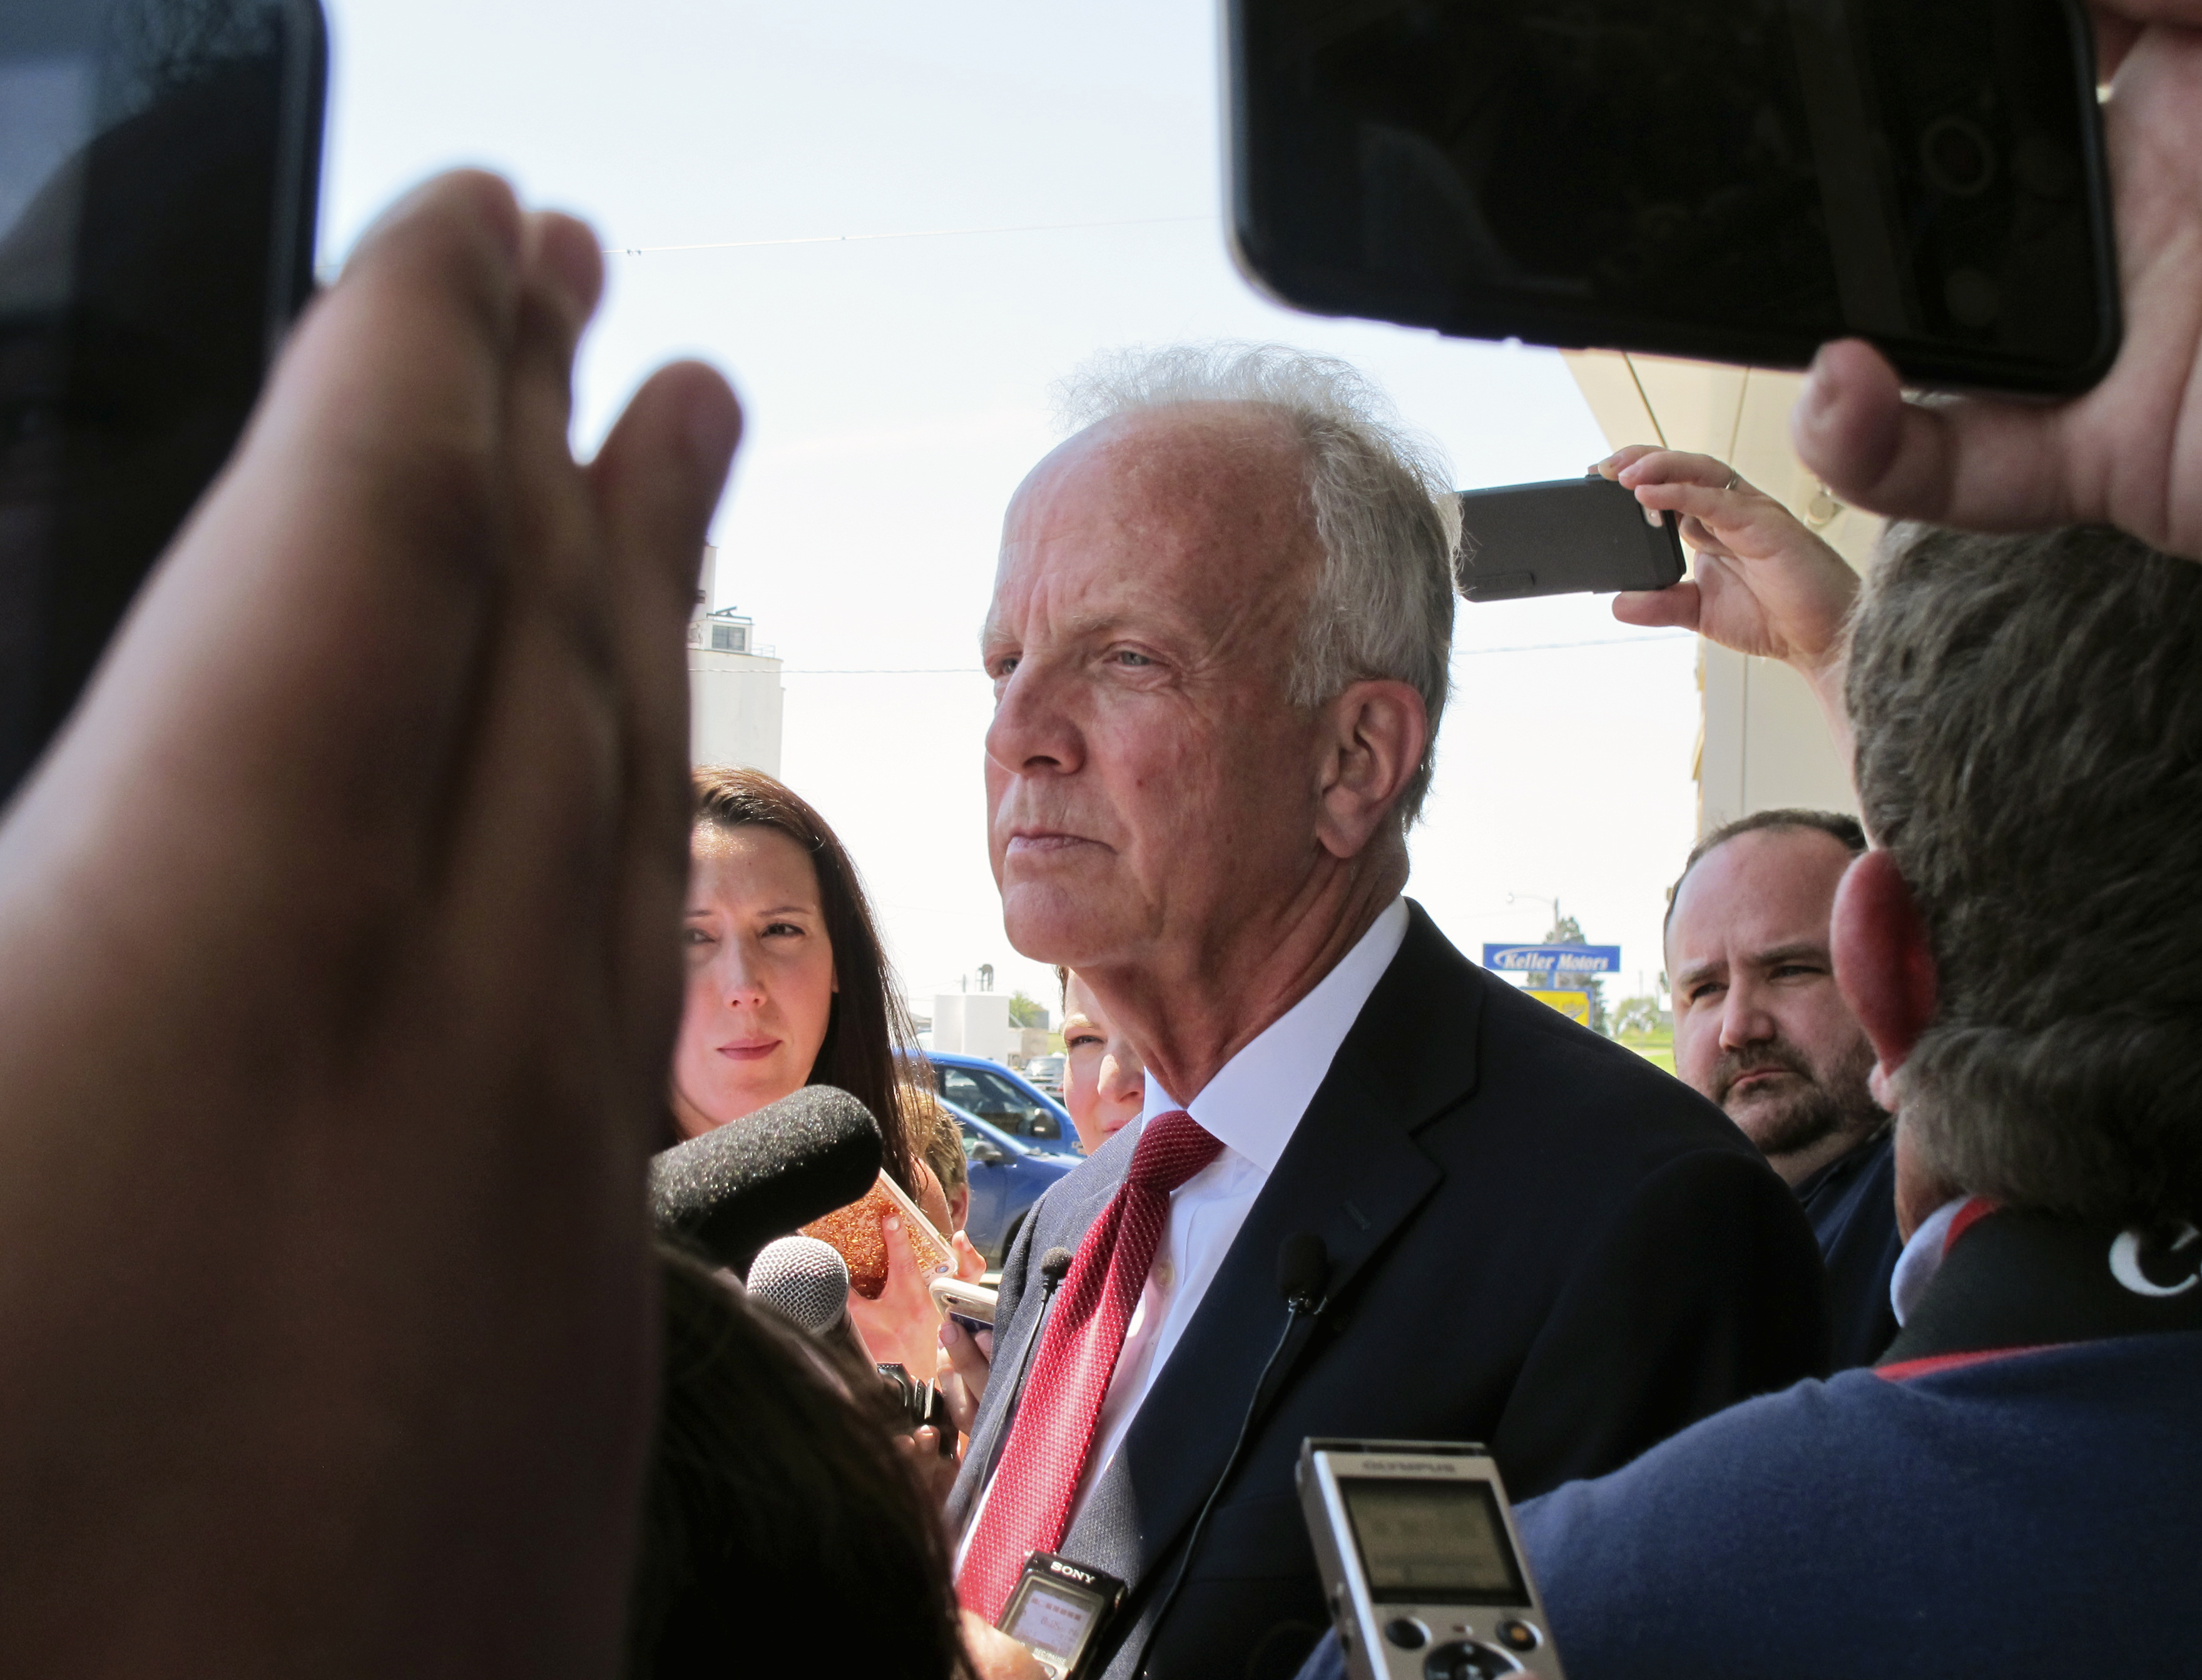 U.S. Sen. Jerry Moran, R-Kan., speaks to reporters following a town hall meeting, July 6, 2017, in Palco, Kan. Critics of GOP efforts to overhaul traveled to the tiny town in western Kansas to pressure Moran.